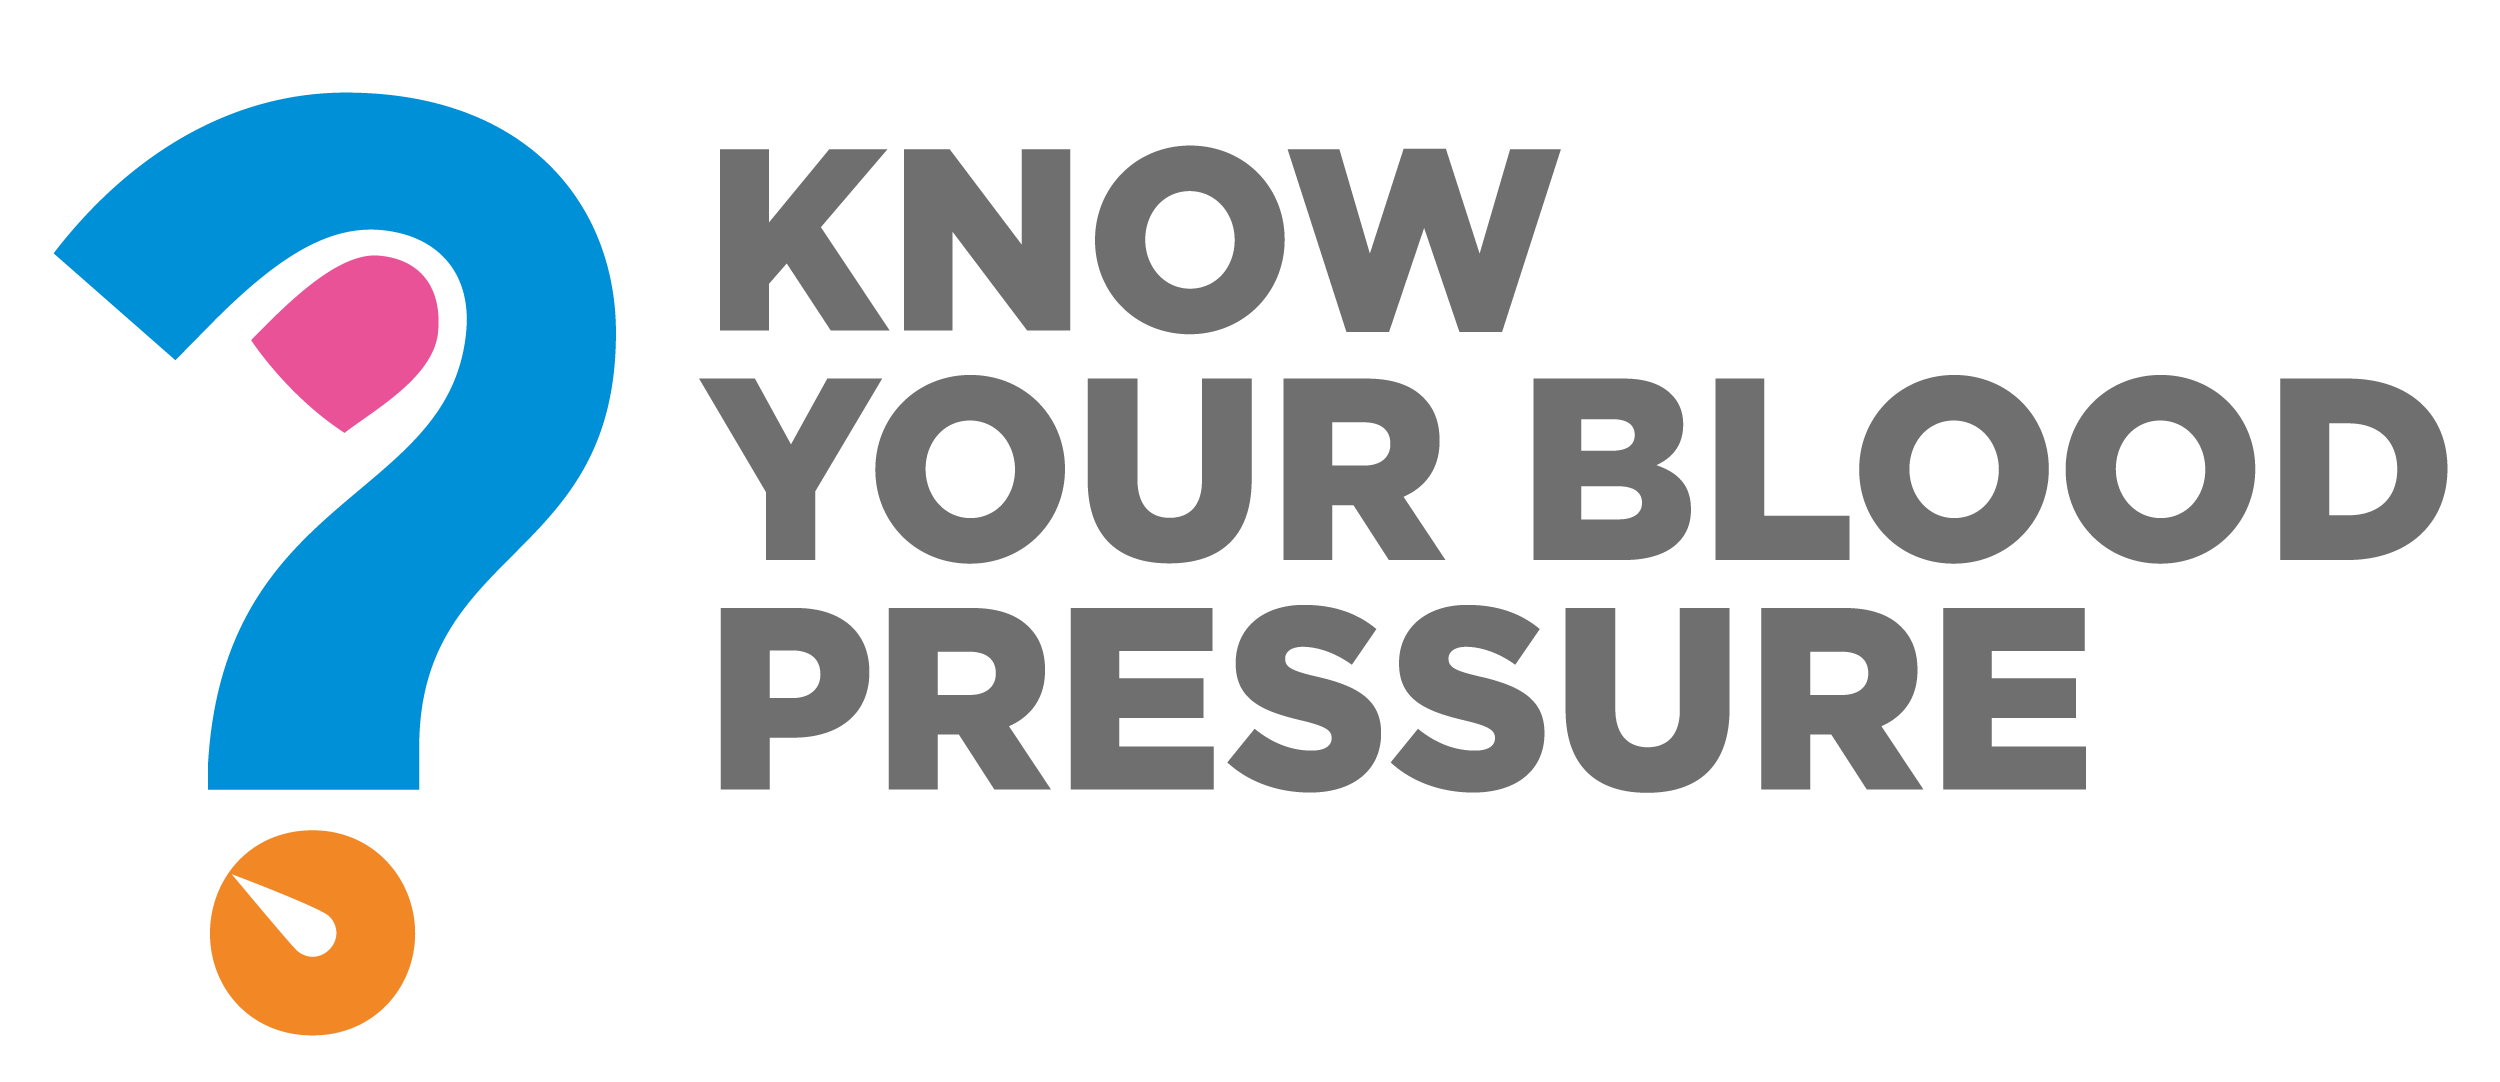 Know Your Blood Pressure